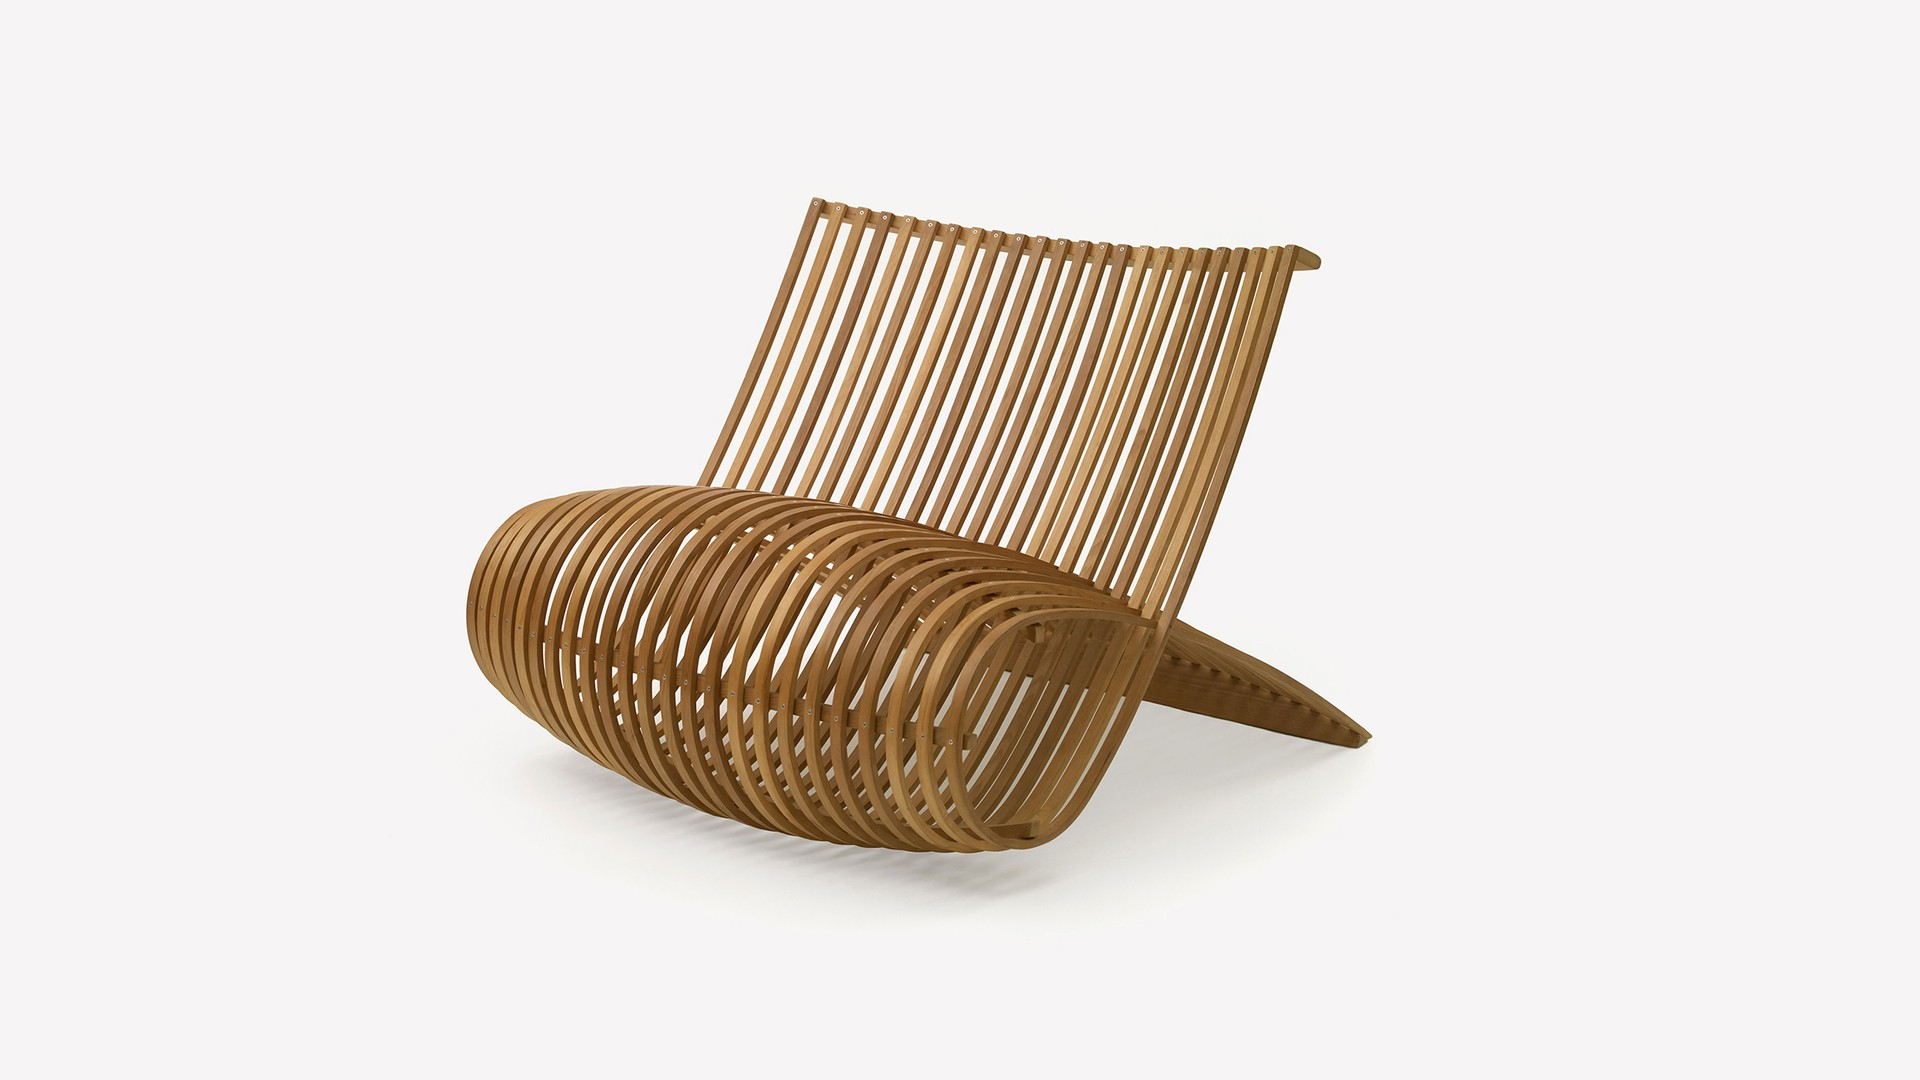 Wood chair marc newson ltd for Marc newson wooden chair